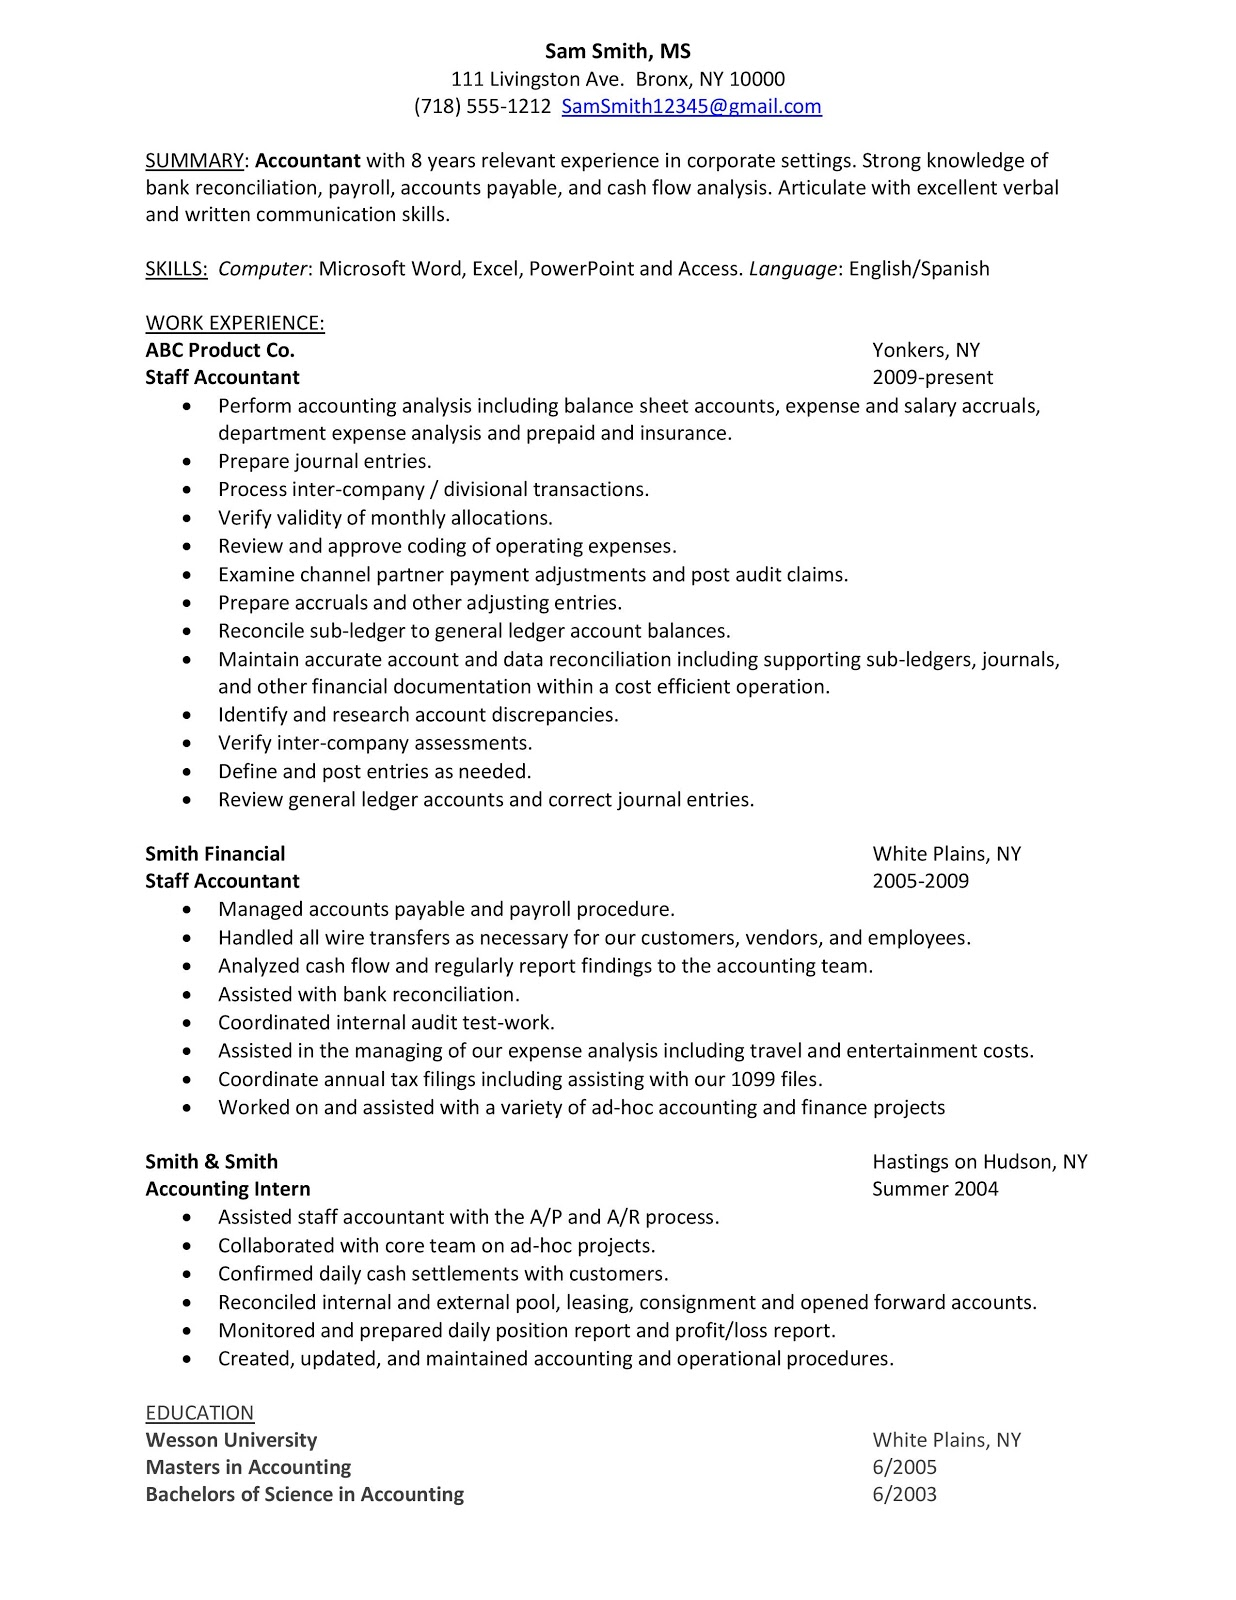 sample resume staff accountant - Sample Resume For Accounting Position